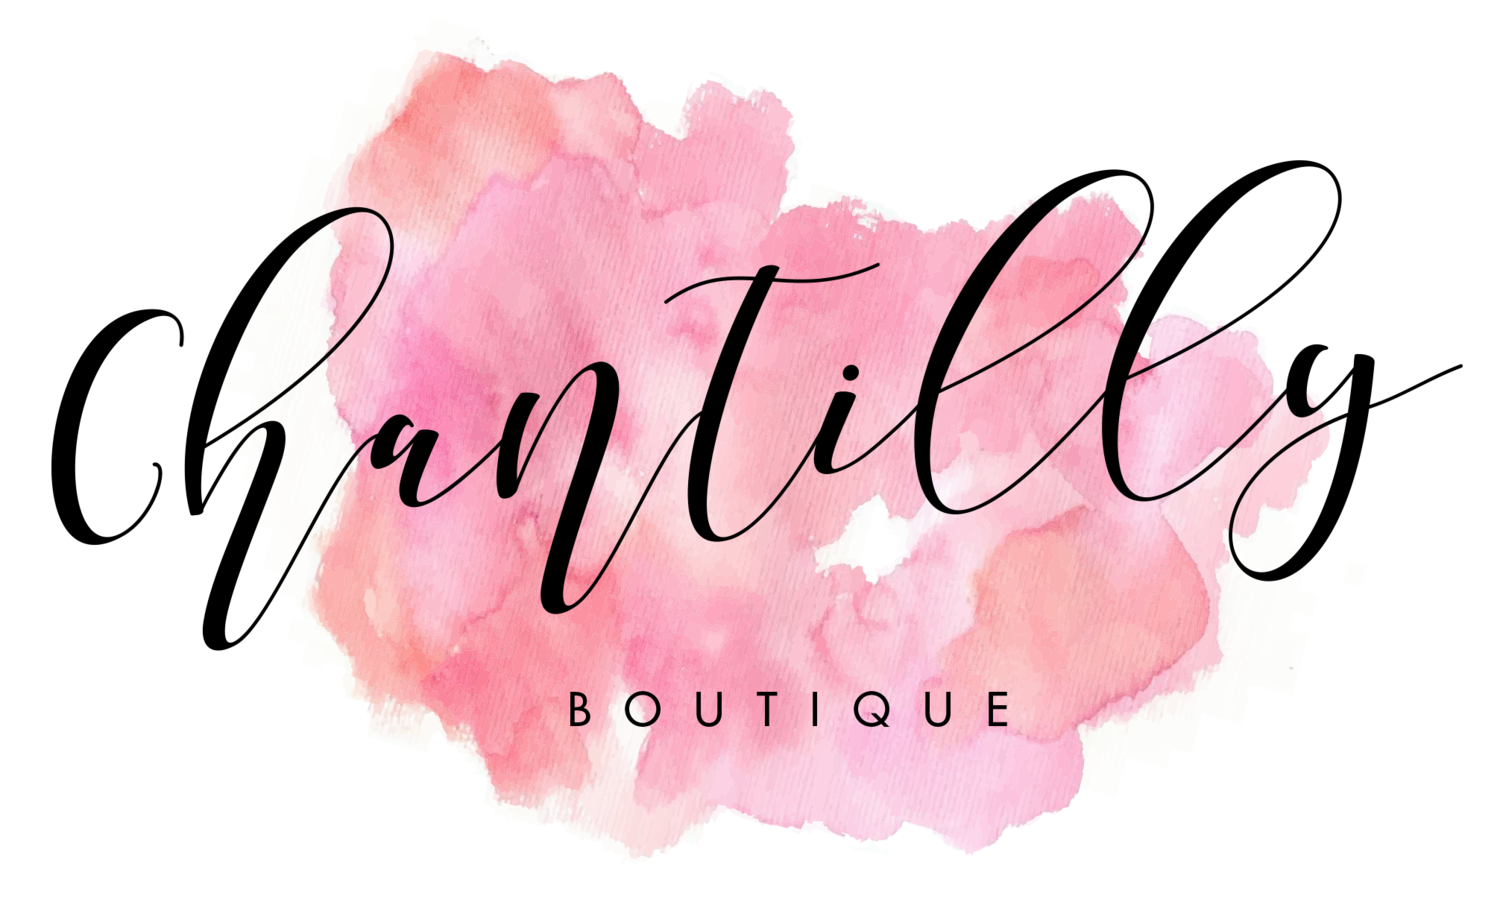 Chantilly Boutique